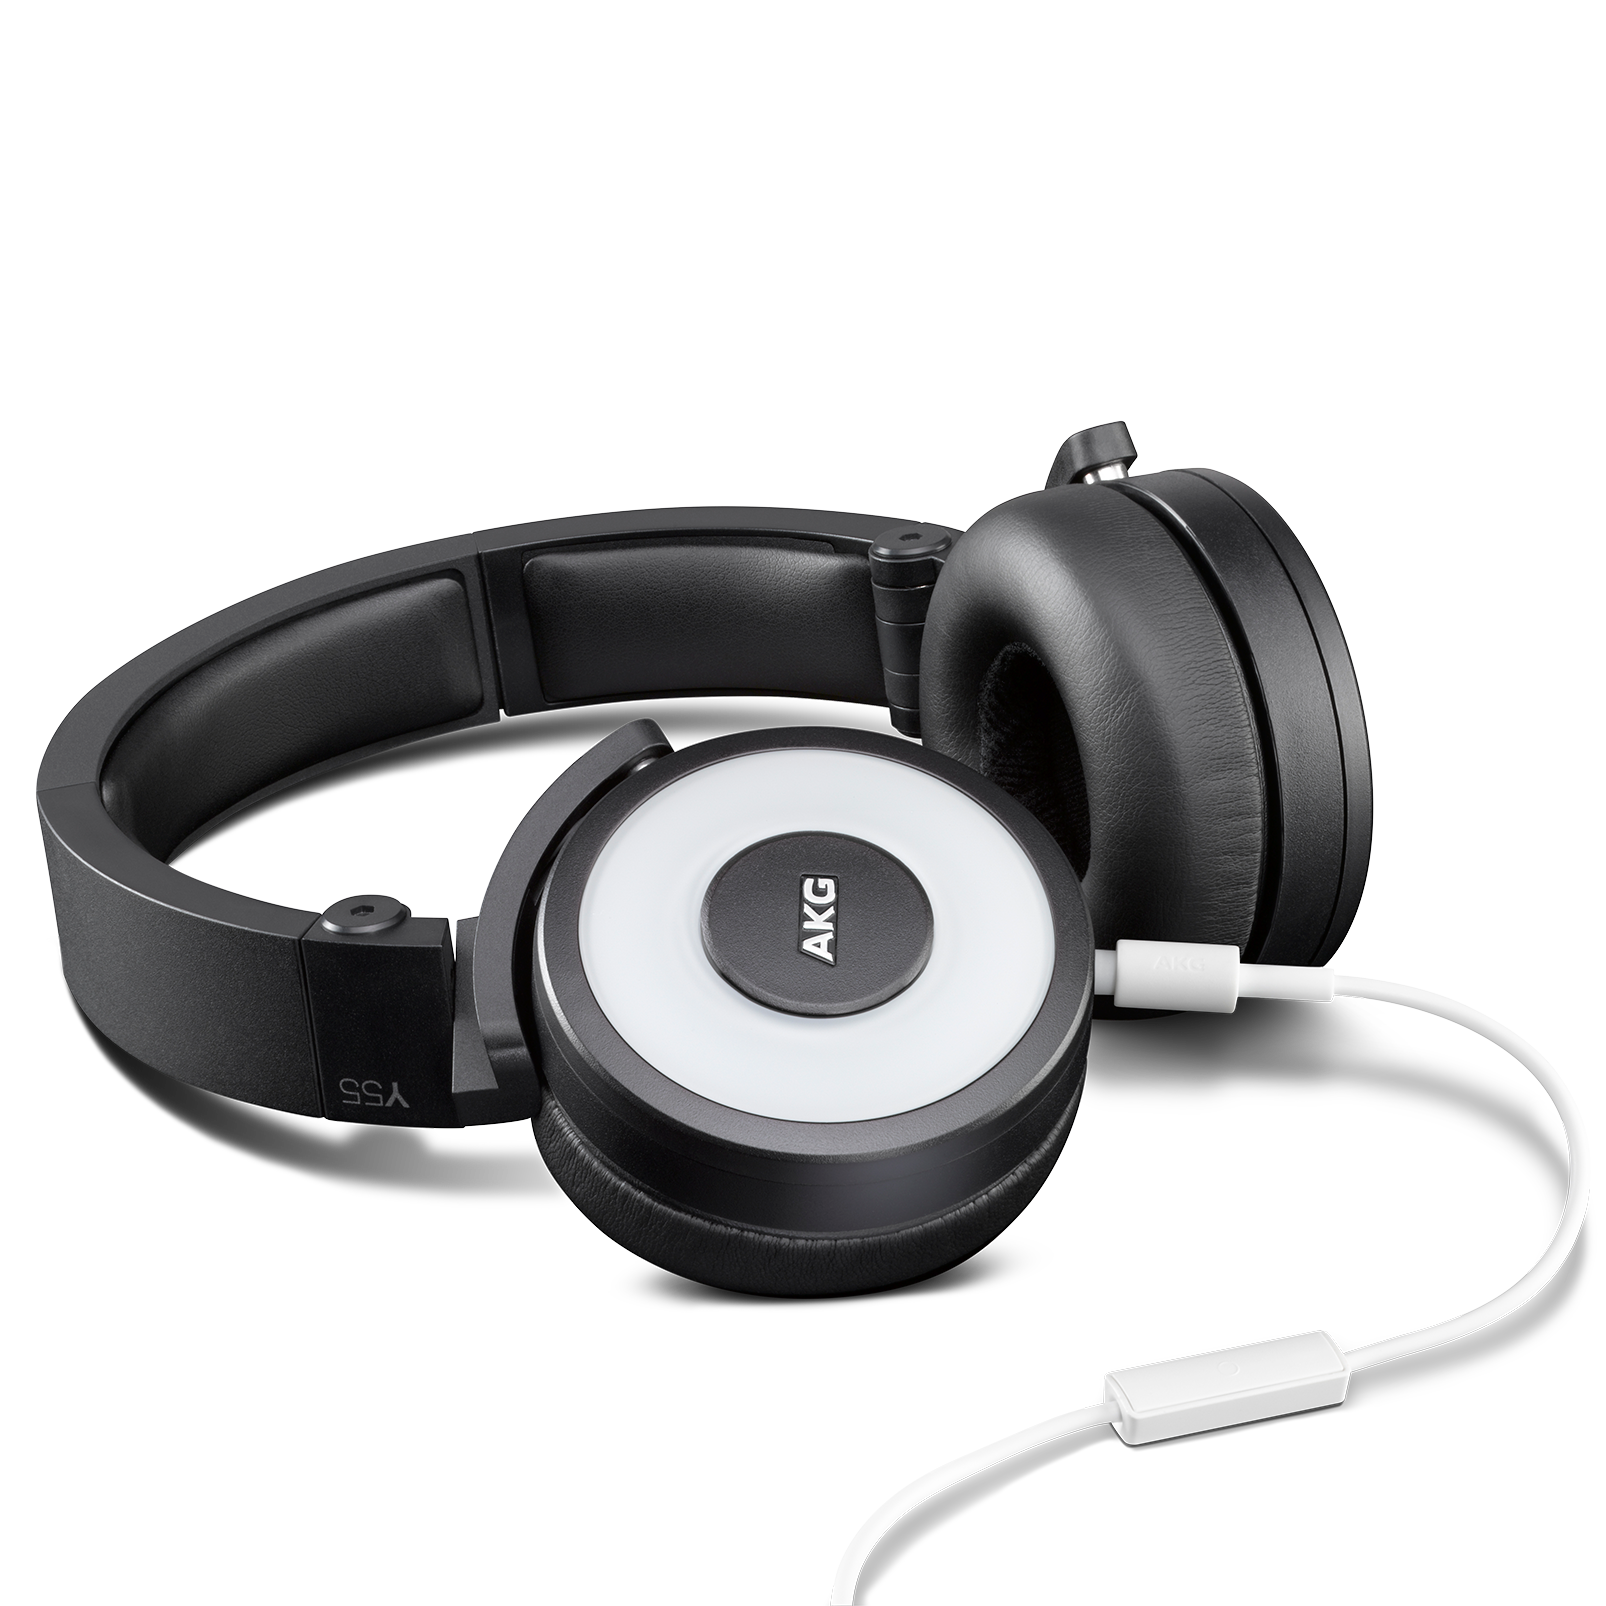 y55 high performance dj headphones with in line microphone and remote. Black Bedroom Furniture Sets. Home Design Ideas